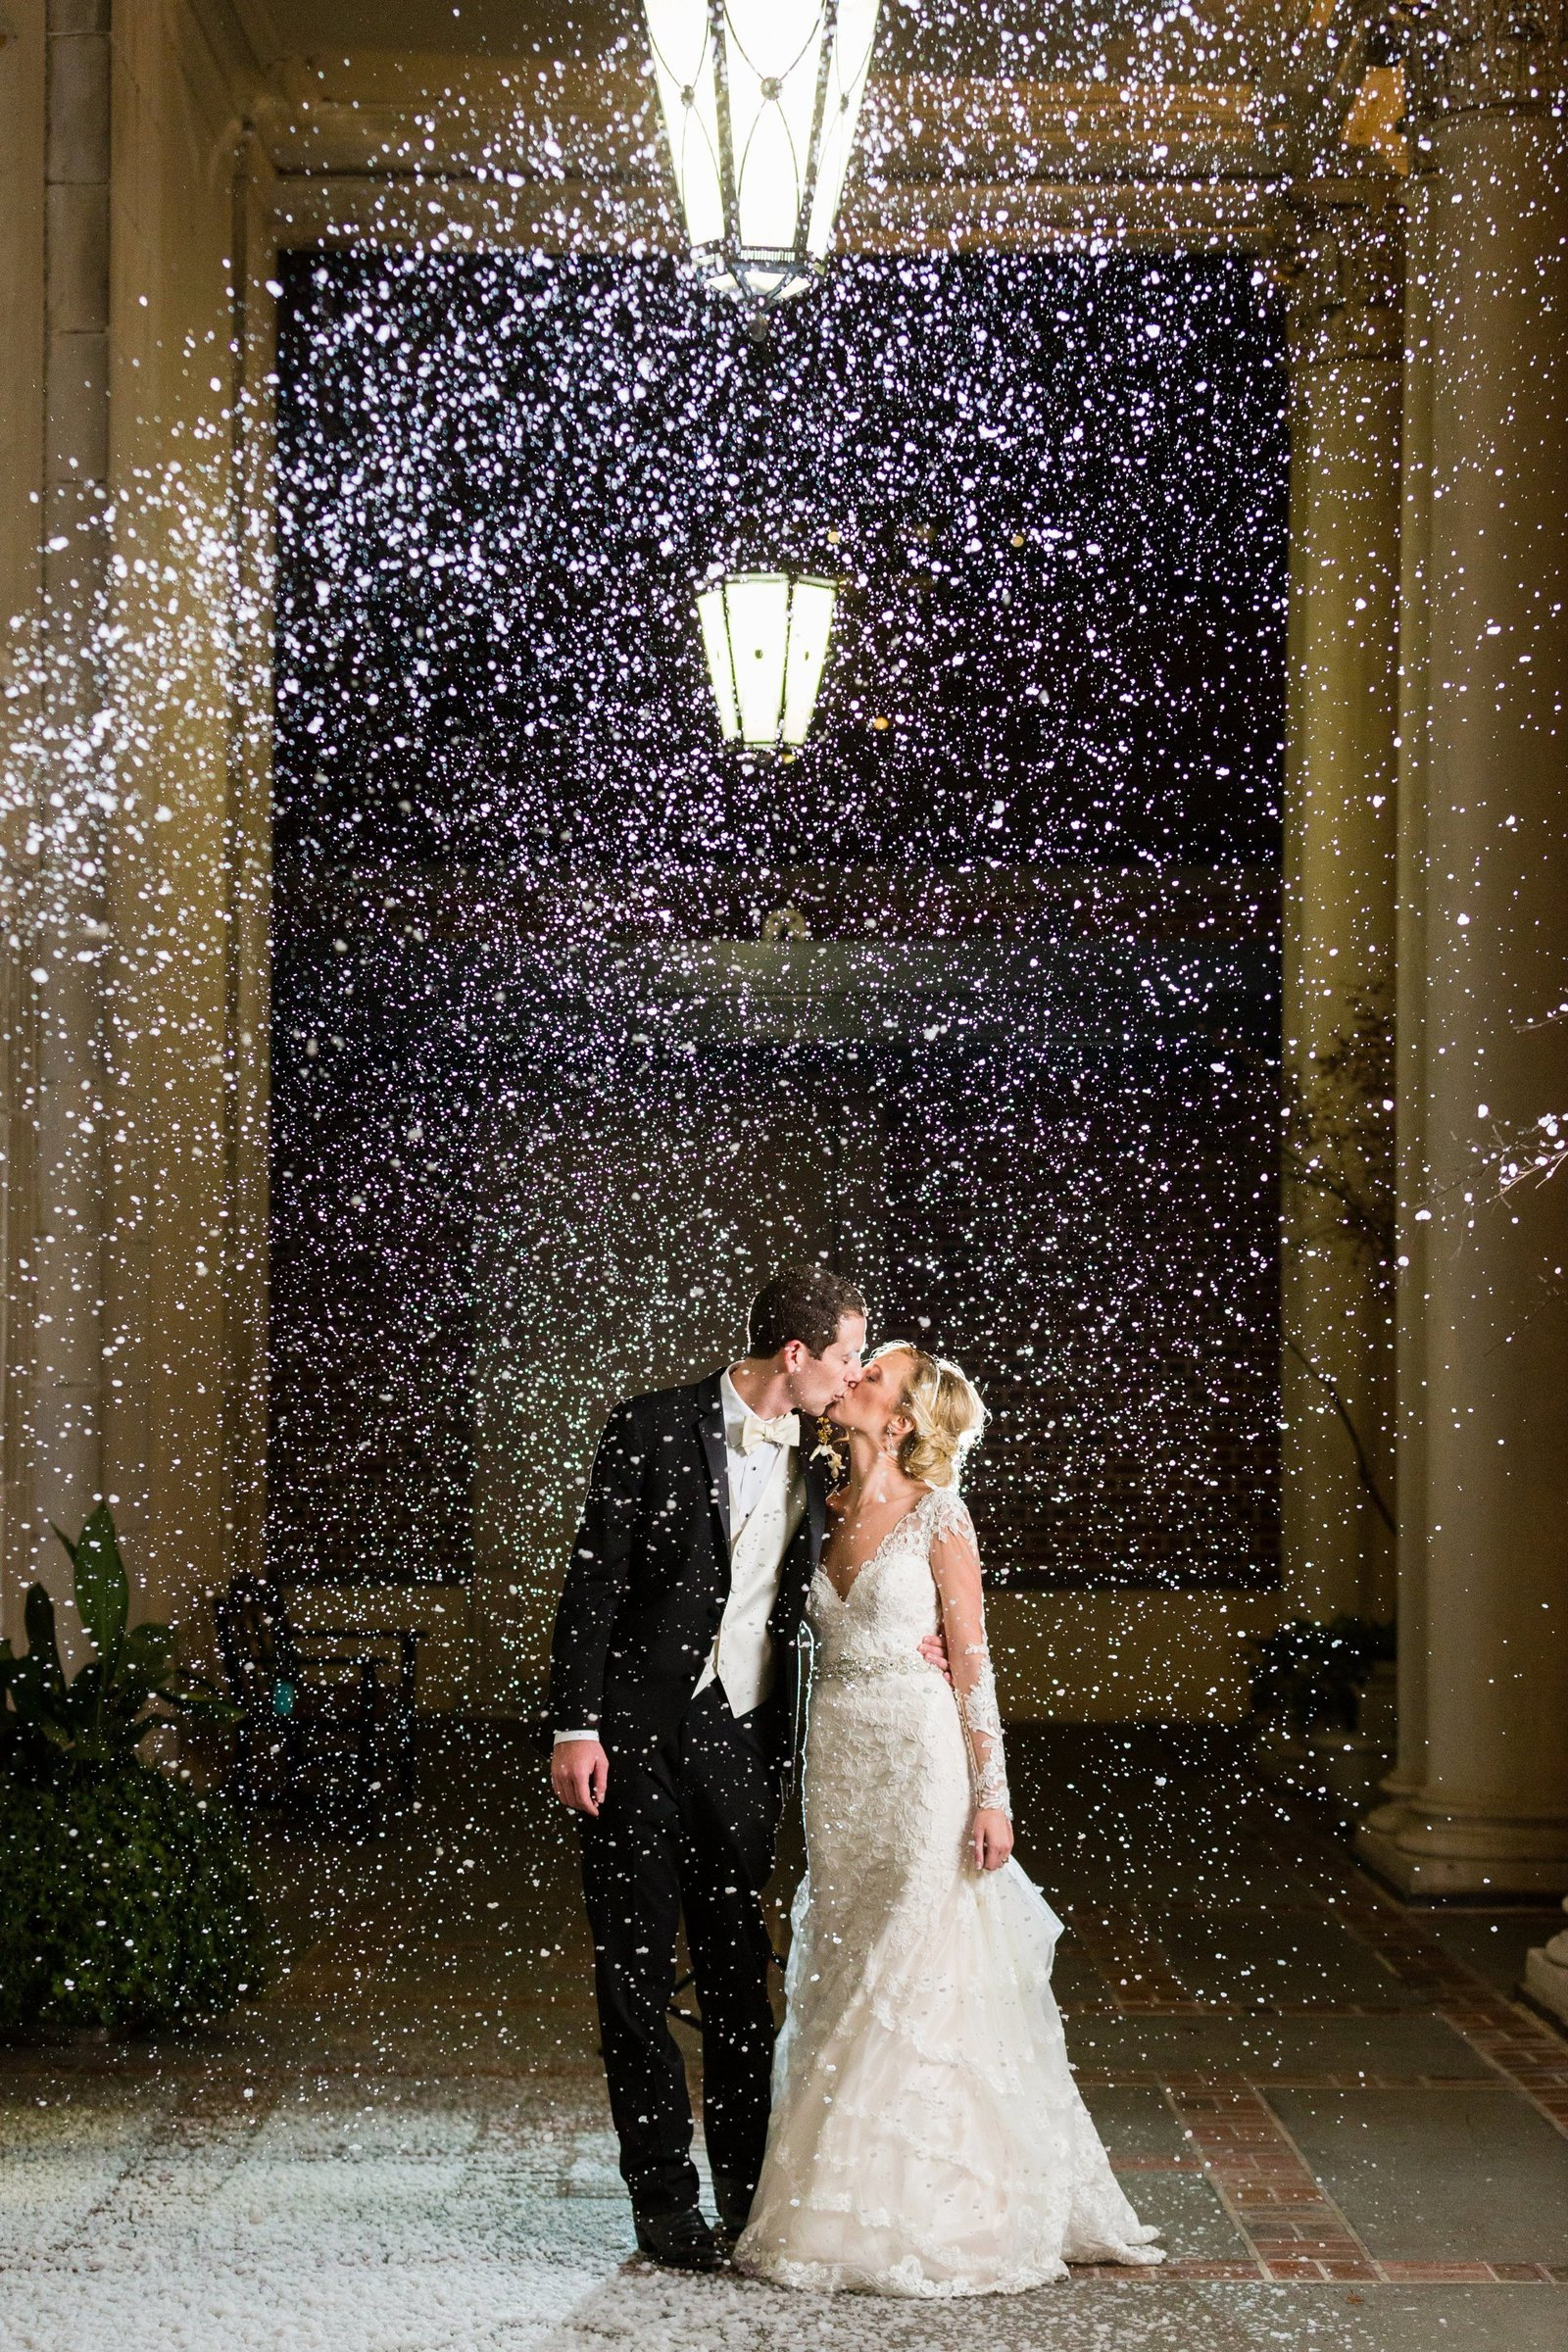 snow-machine-for-wedding-exit-in-atlanta